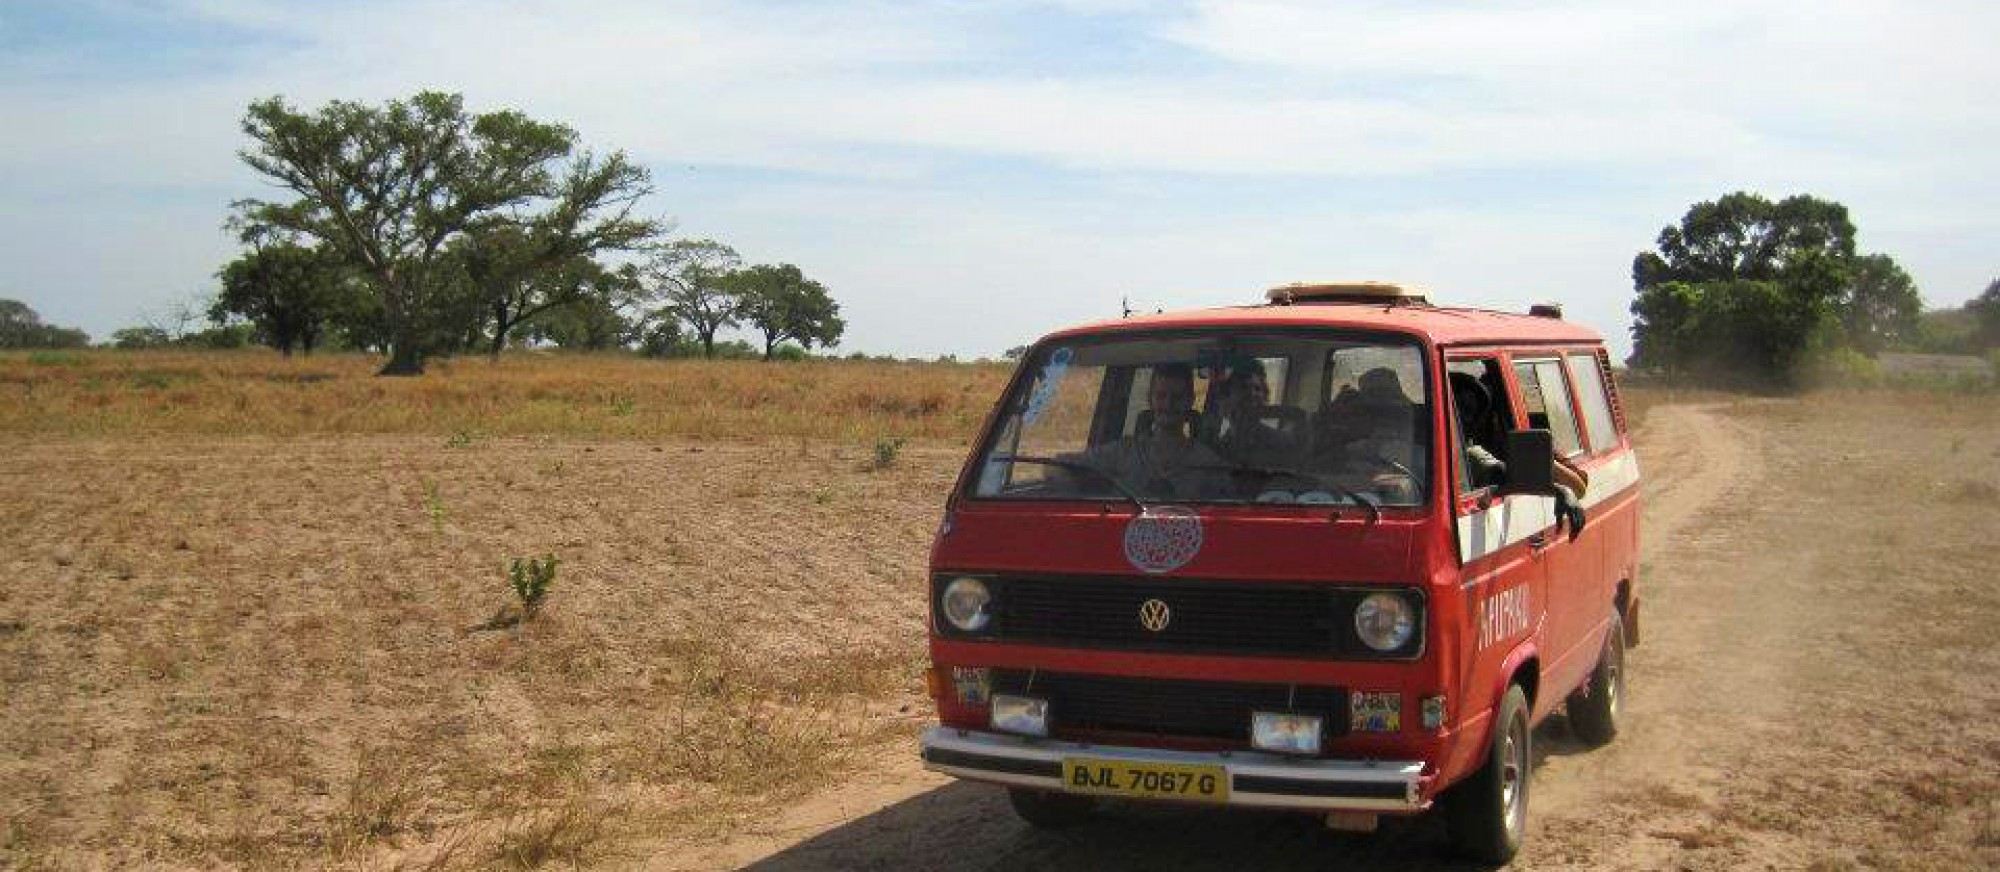 The first Apu-Paku van in Gambia 2010